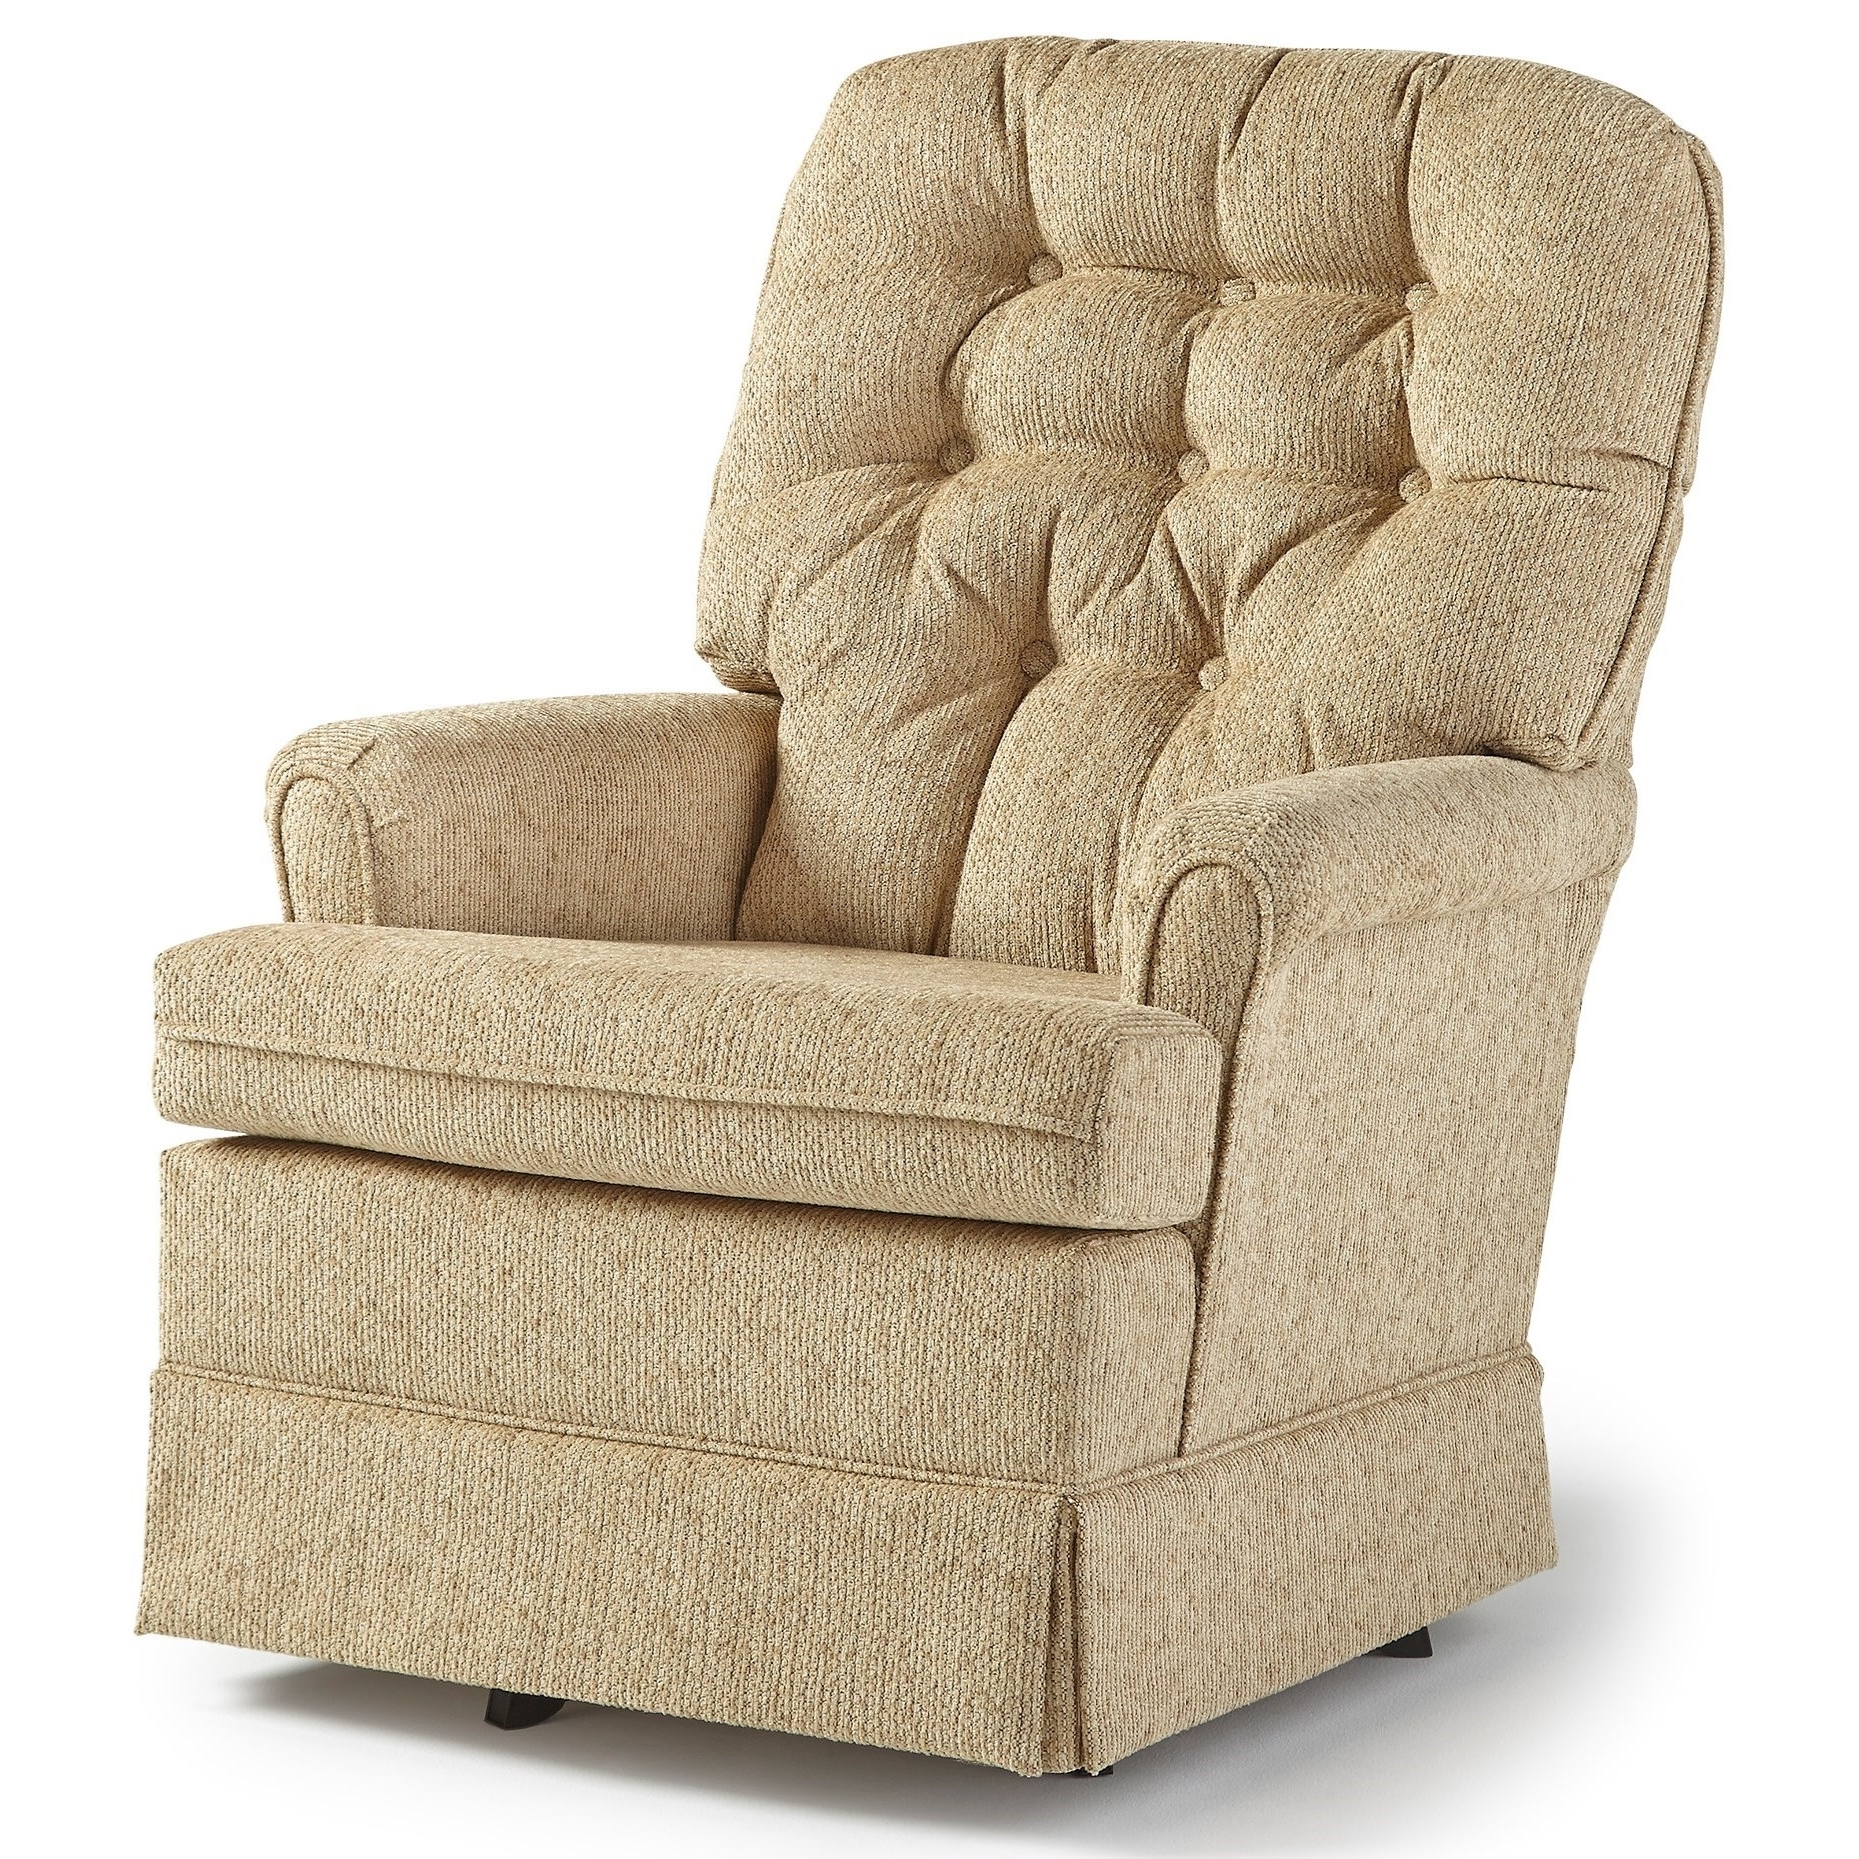 Best Home Furnishings Swivel Glide Chairs Joplin Swivel Rocker Chair In Most Current Swivel Rocking Chairs (View 5 of 15)